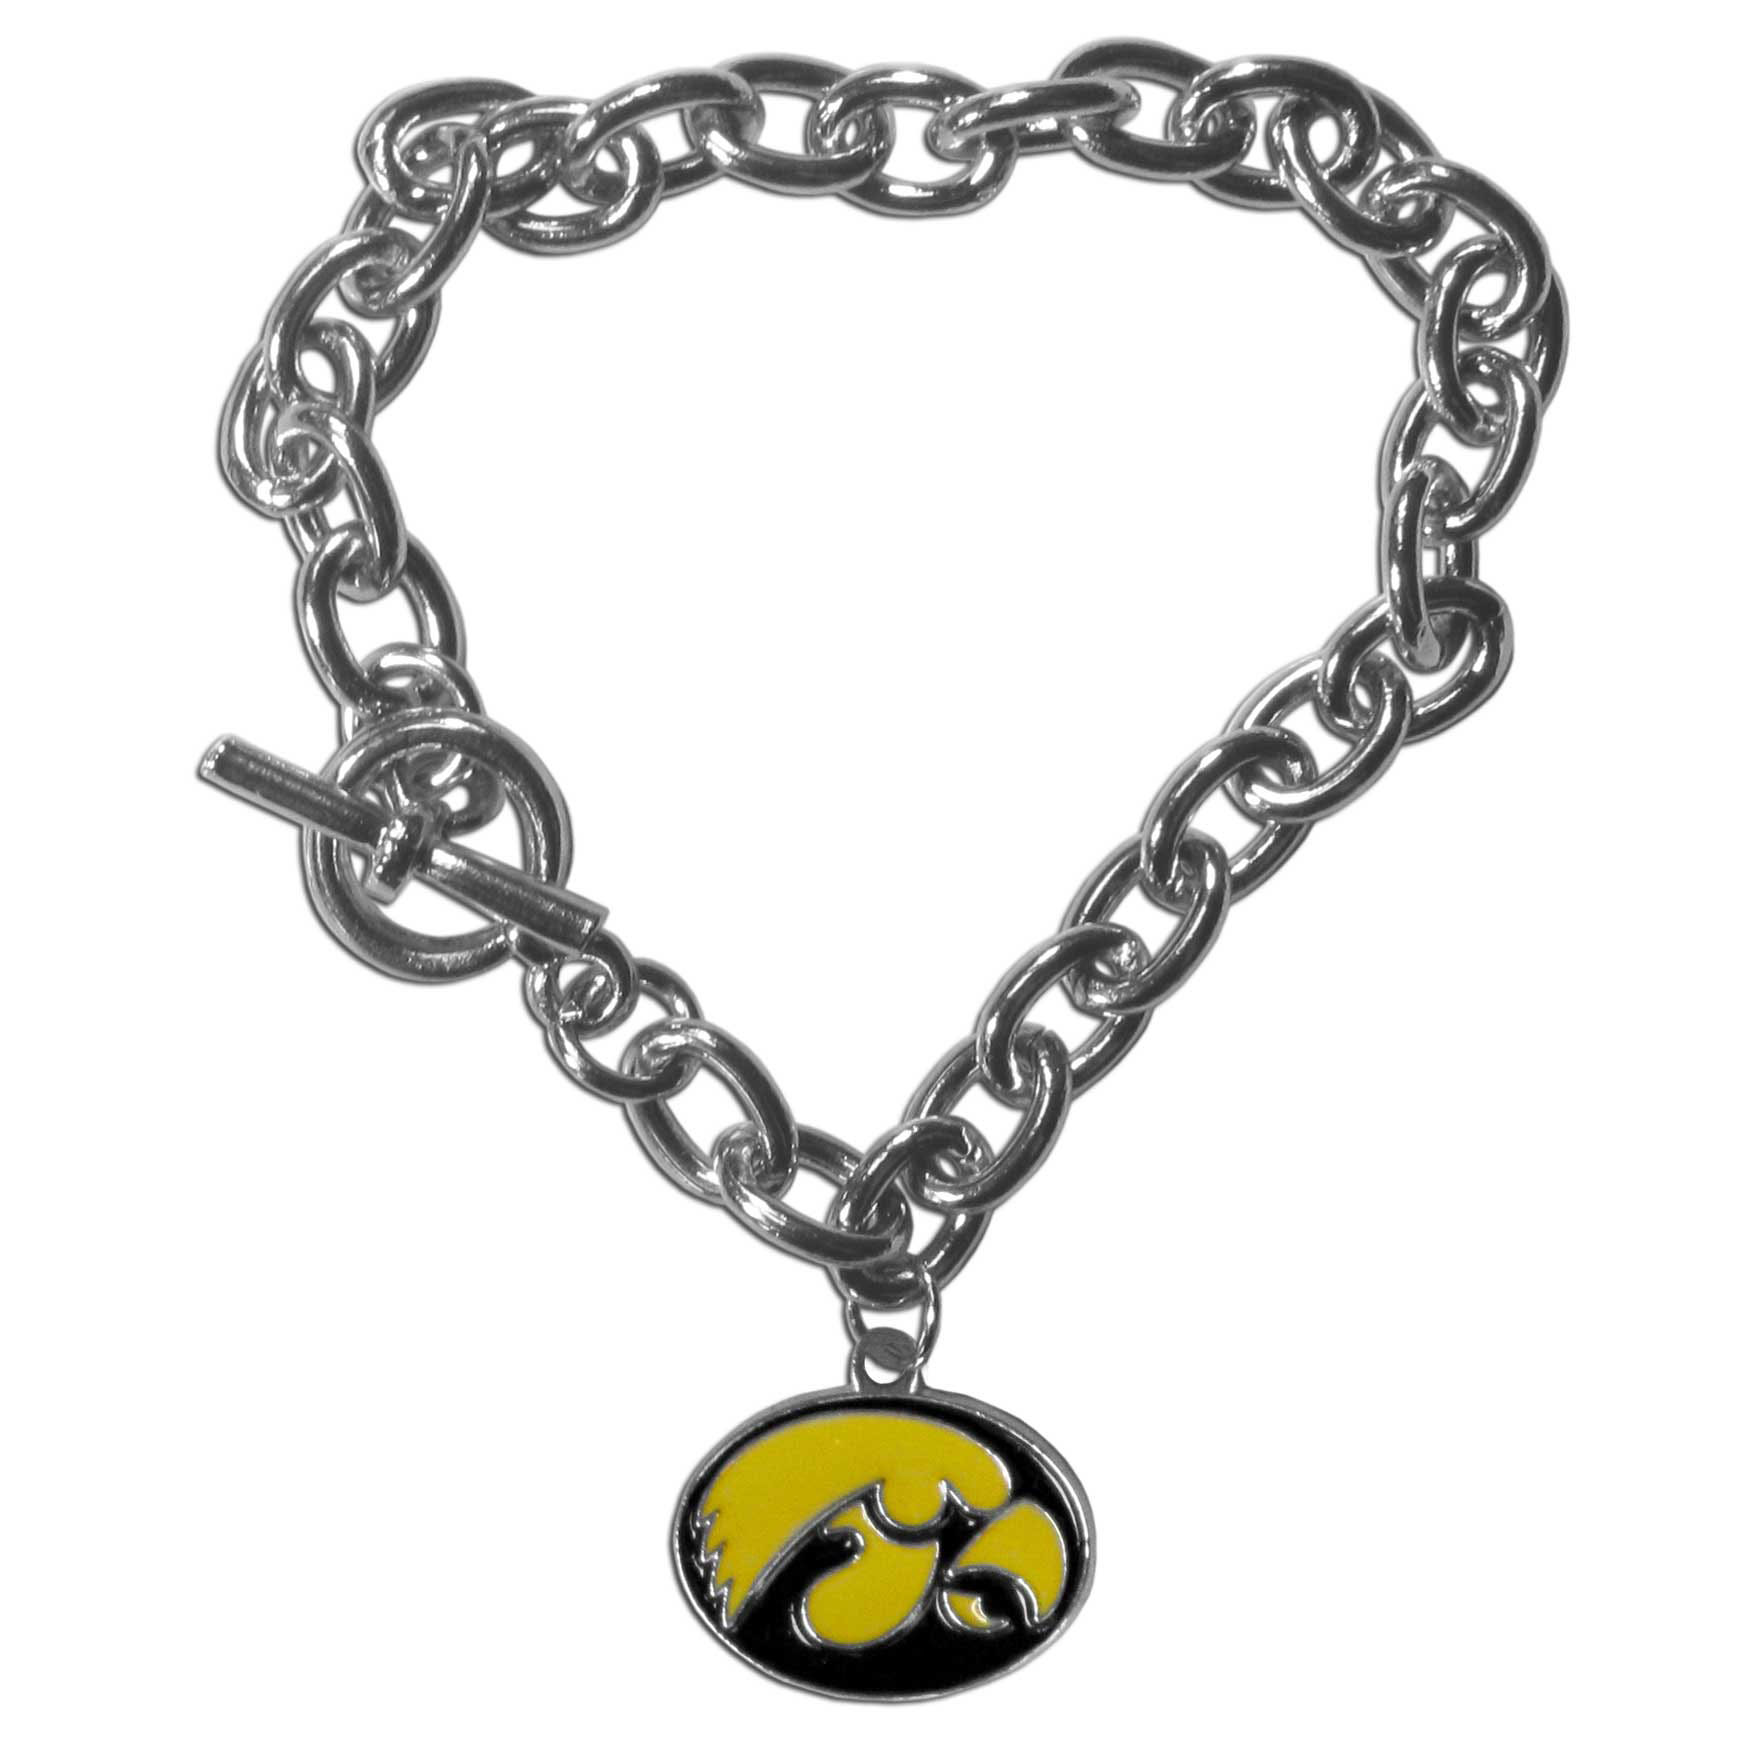 Iowa Hawkeyes Charm Chain Bracelet - Our classic single charm bracelet is a great way to show off your team pride! The 7.5 inch large link chain features a high polish Iowa Hawkeyes charm and features a toggle clasp which makes it super easy to take on and off.